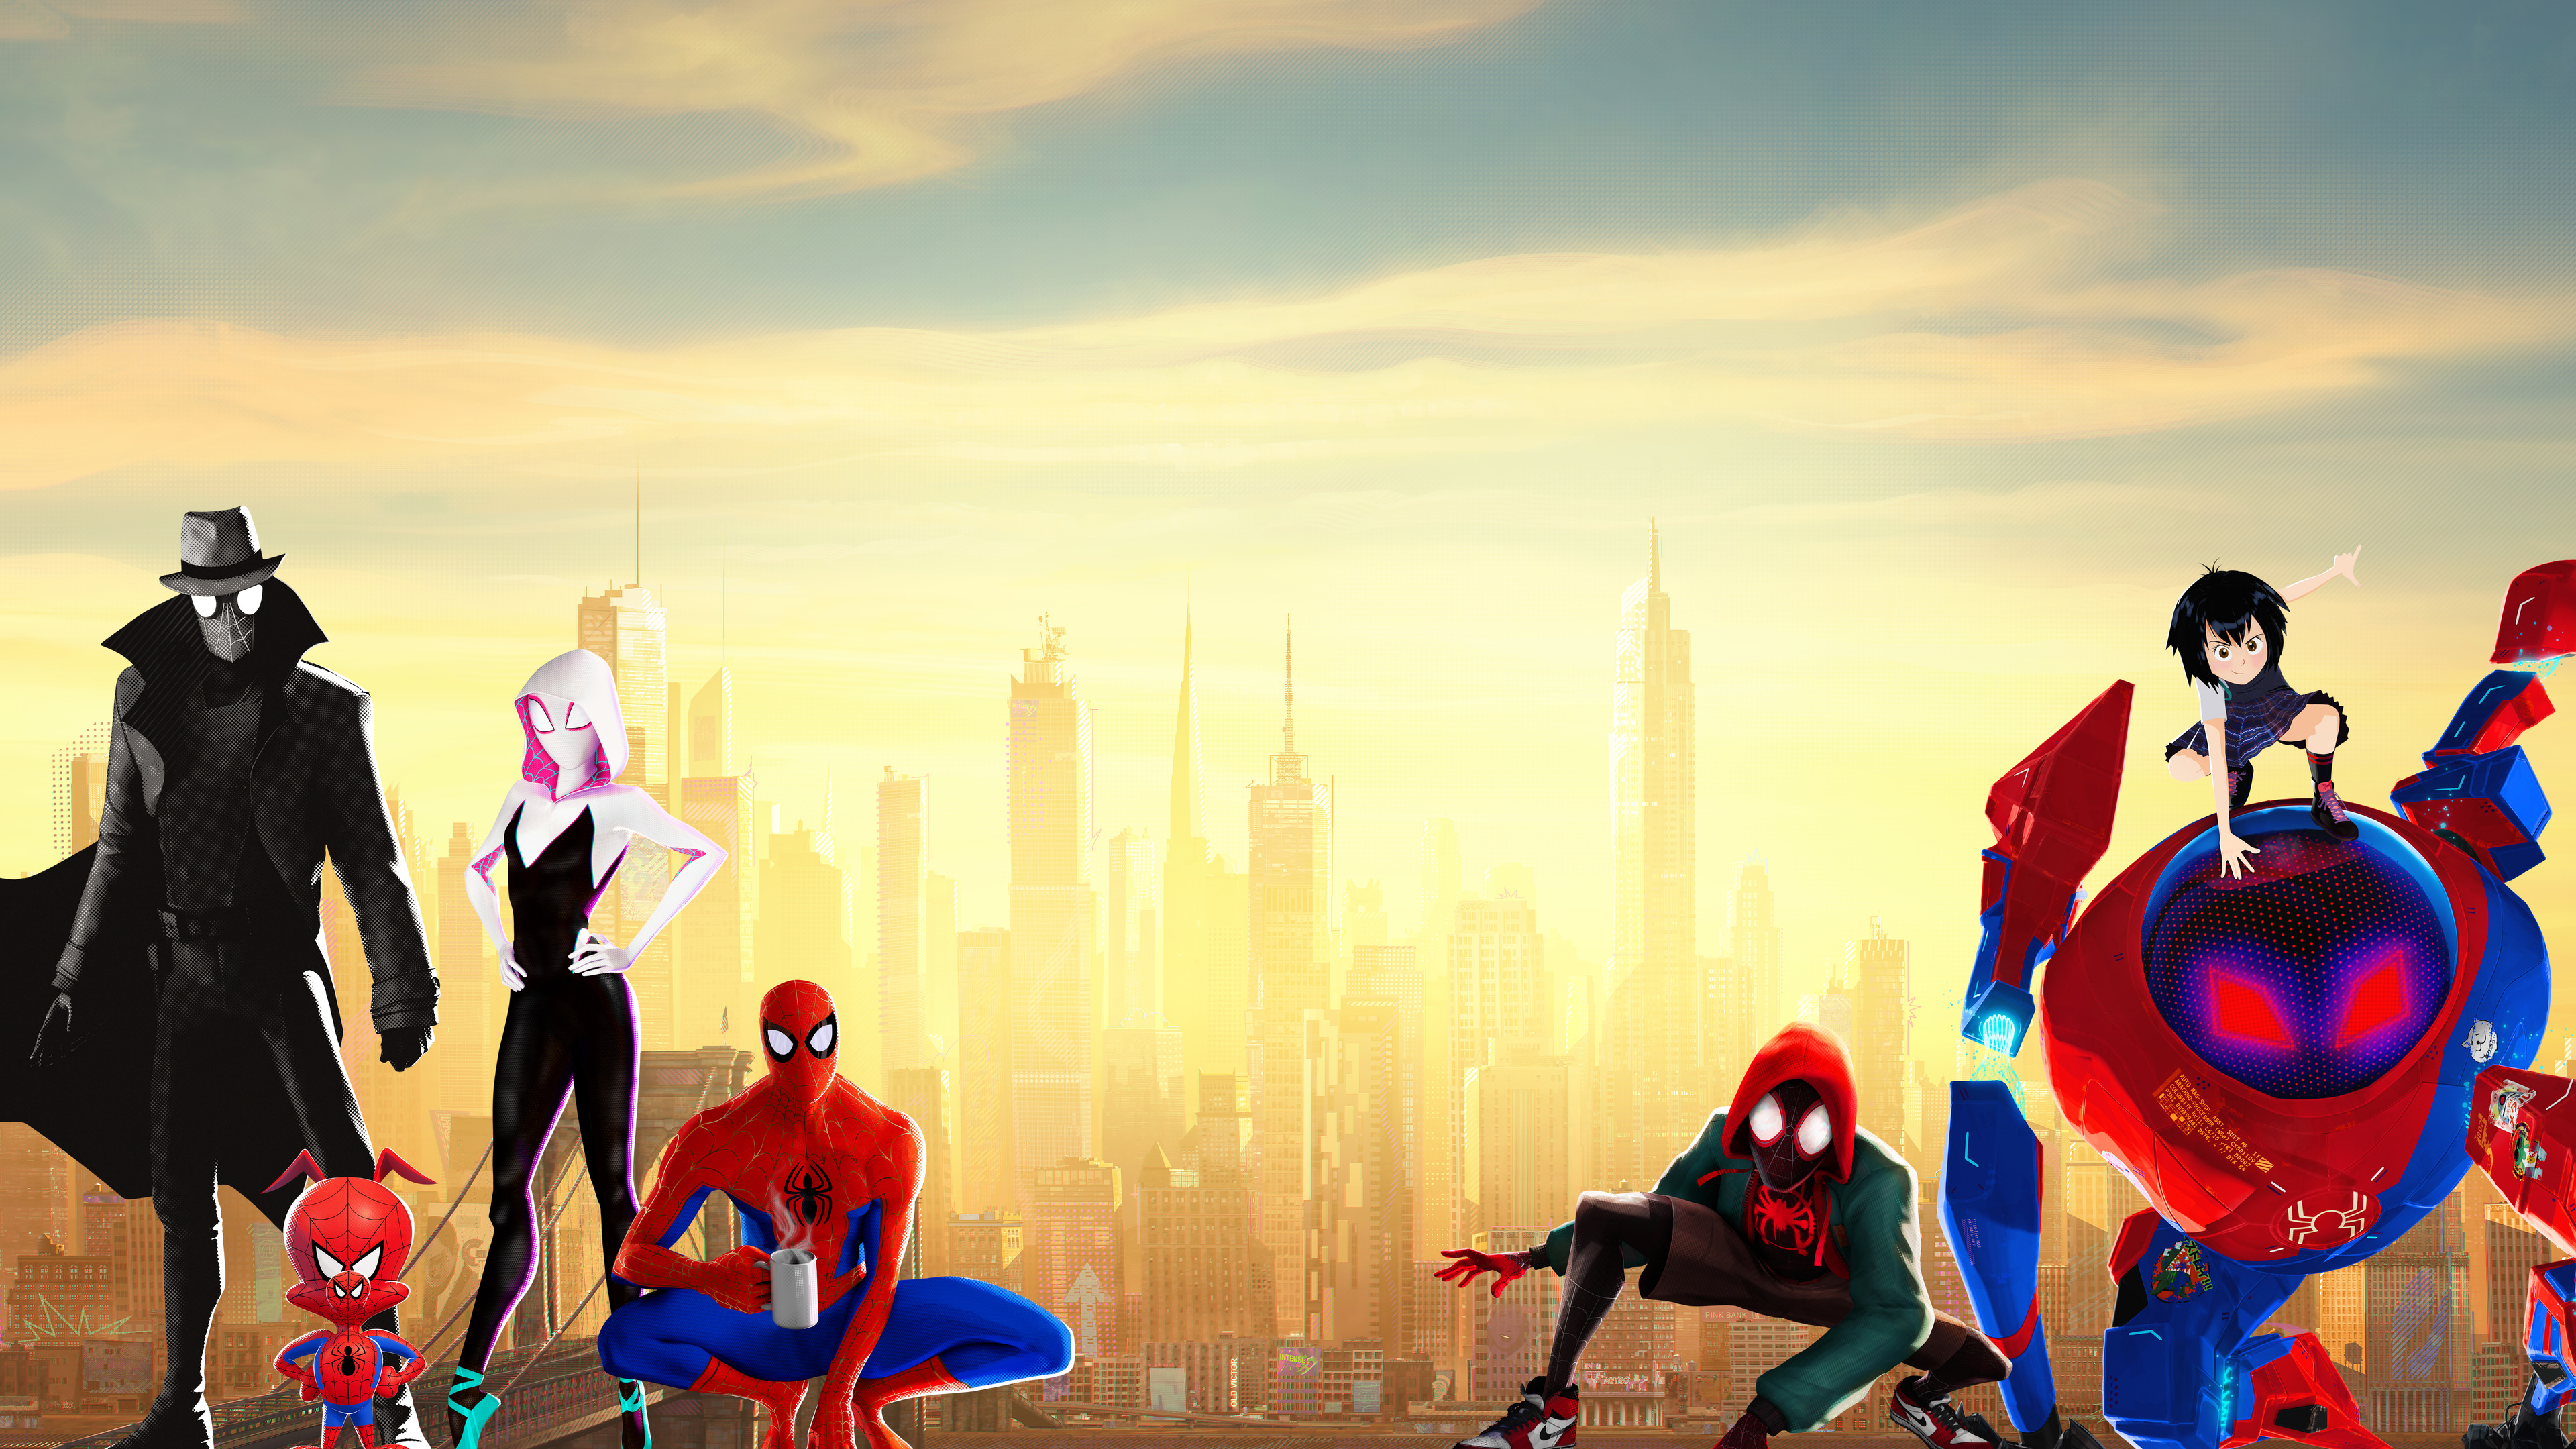 spiderman into the spider verse 4k 1543105165 - Spiderman Into The Spider Verse 4k - spiderman wallpapers, spiderman into the spider verse wallpapers, movies wallpapers, hd-wallpapers, animated movies wallpapers, 8k wallpapers, 5k wallpapers, 4k-wallpapers, 2018-movies-wallpapers, 15k wallpapers, 12k wallpapers, 10k wallpapers